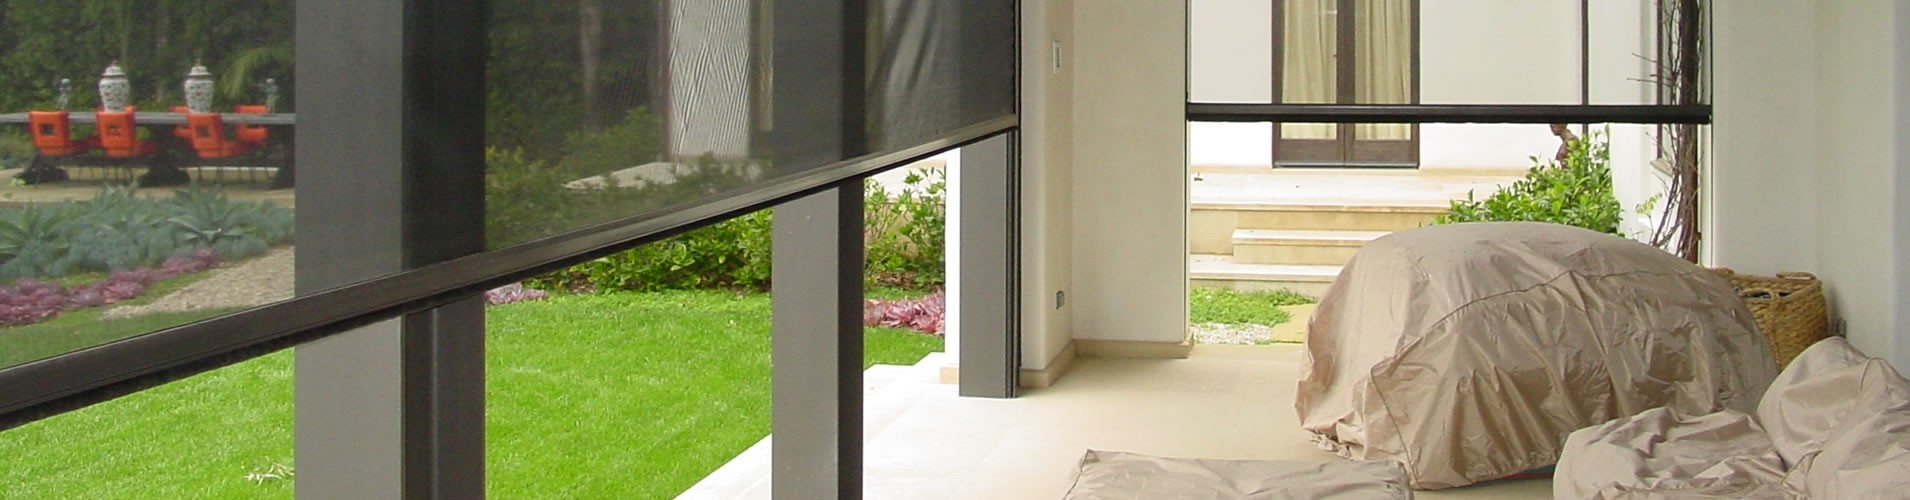 Dallas Retractable Screens